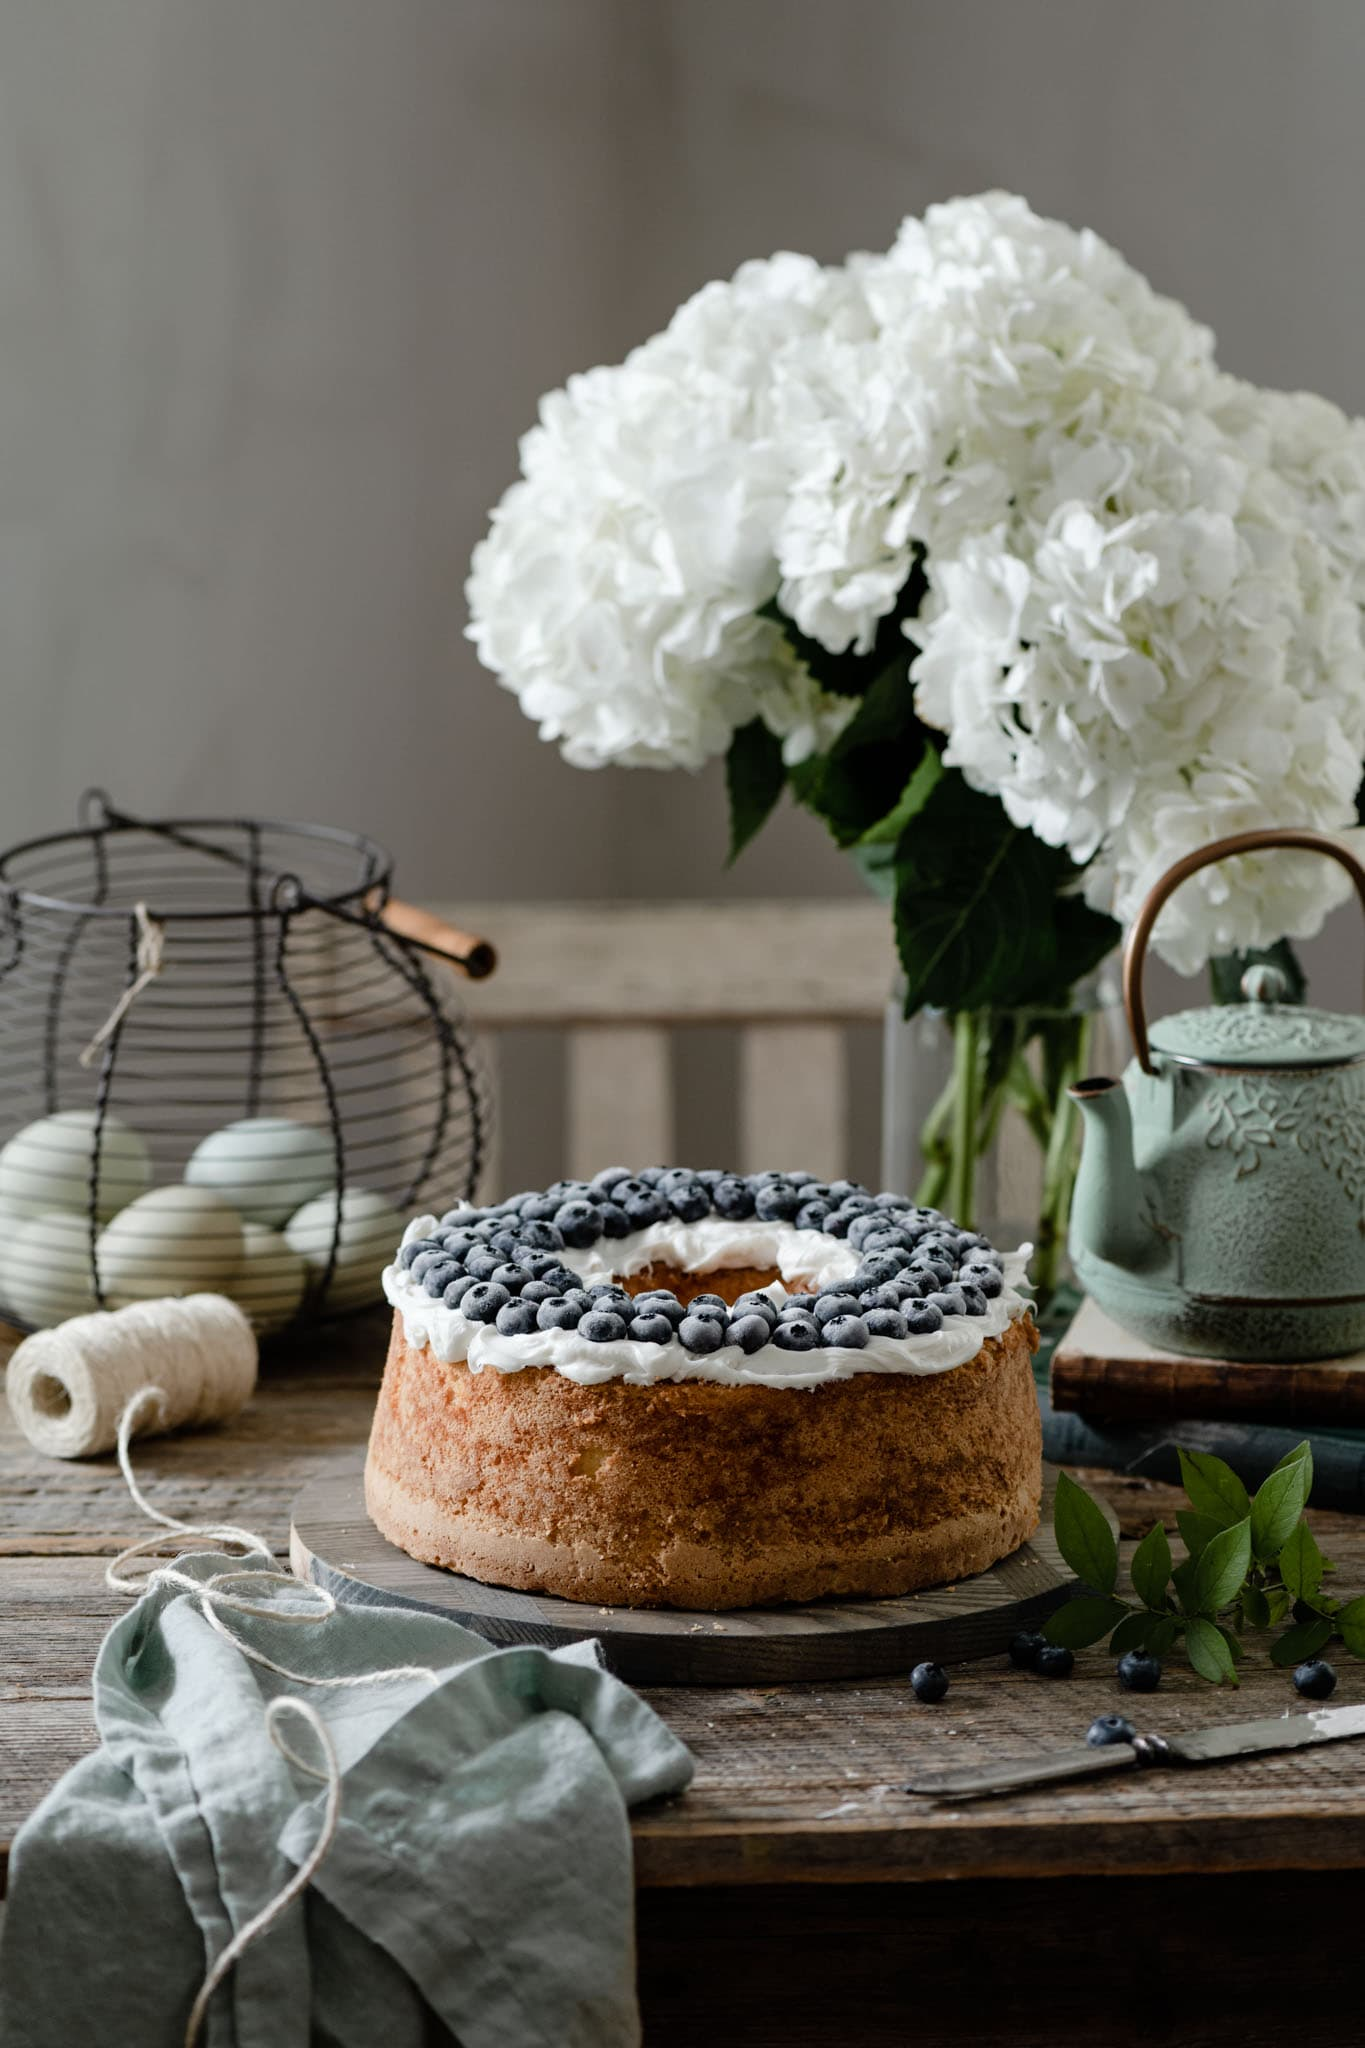 Pound Cake topped with vanilla frosting and blueberries.